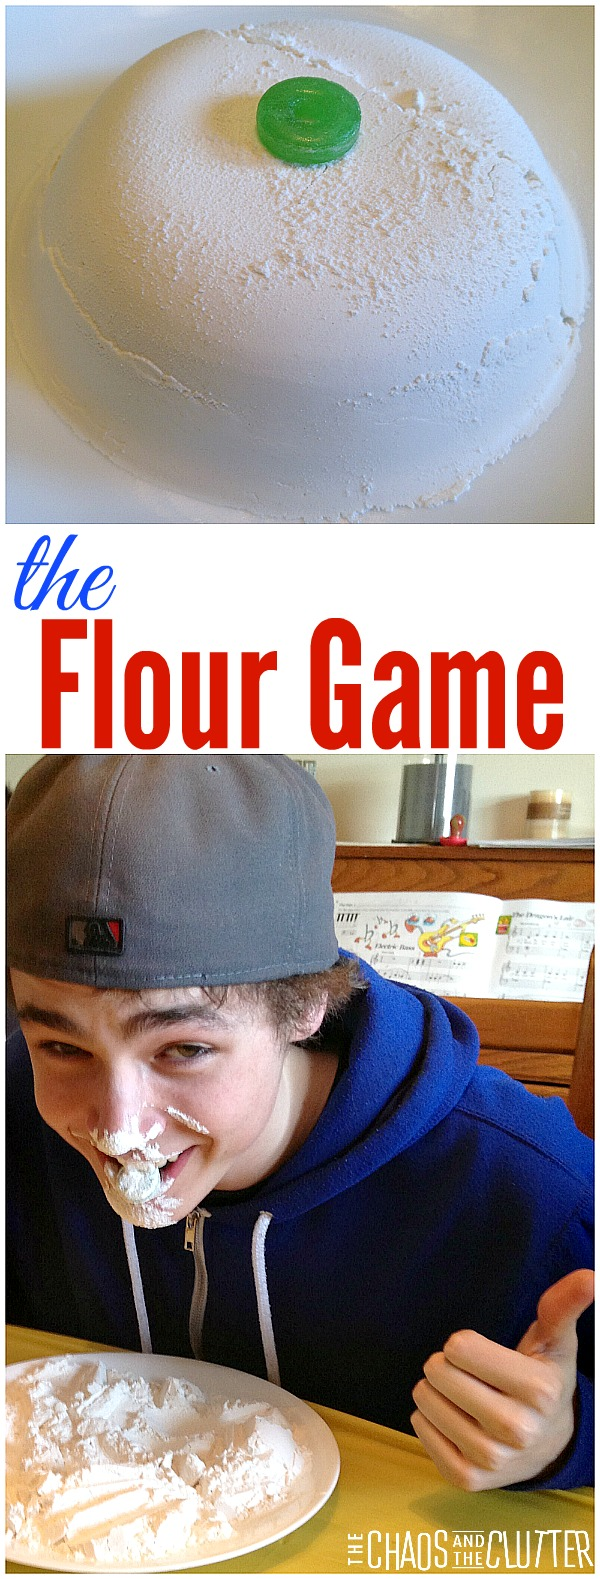 This flour game would be perfect for large parties, youth group events or family reunions because you can play with a wide range of ages.